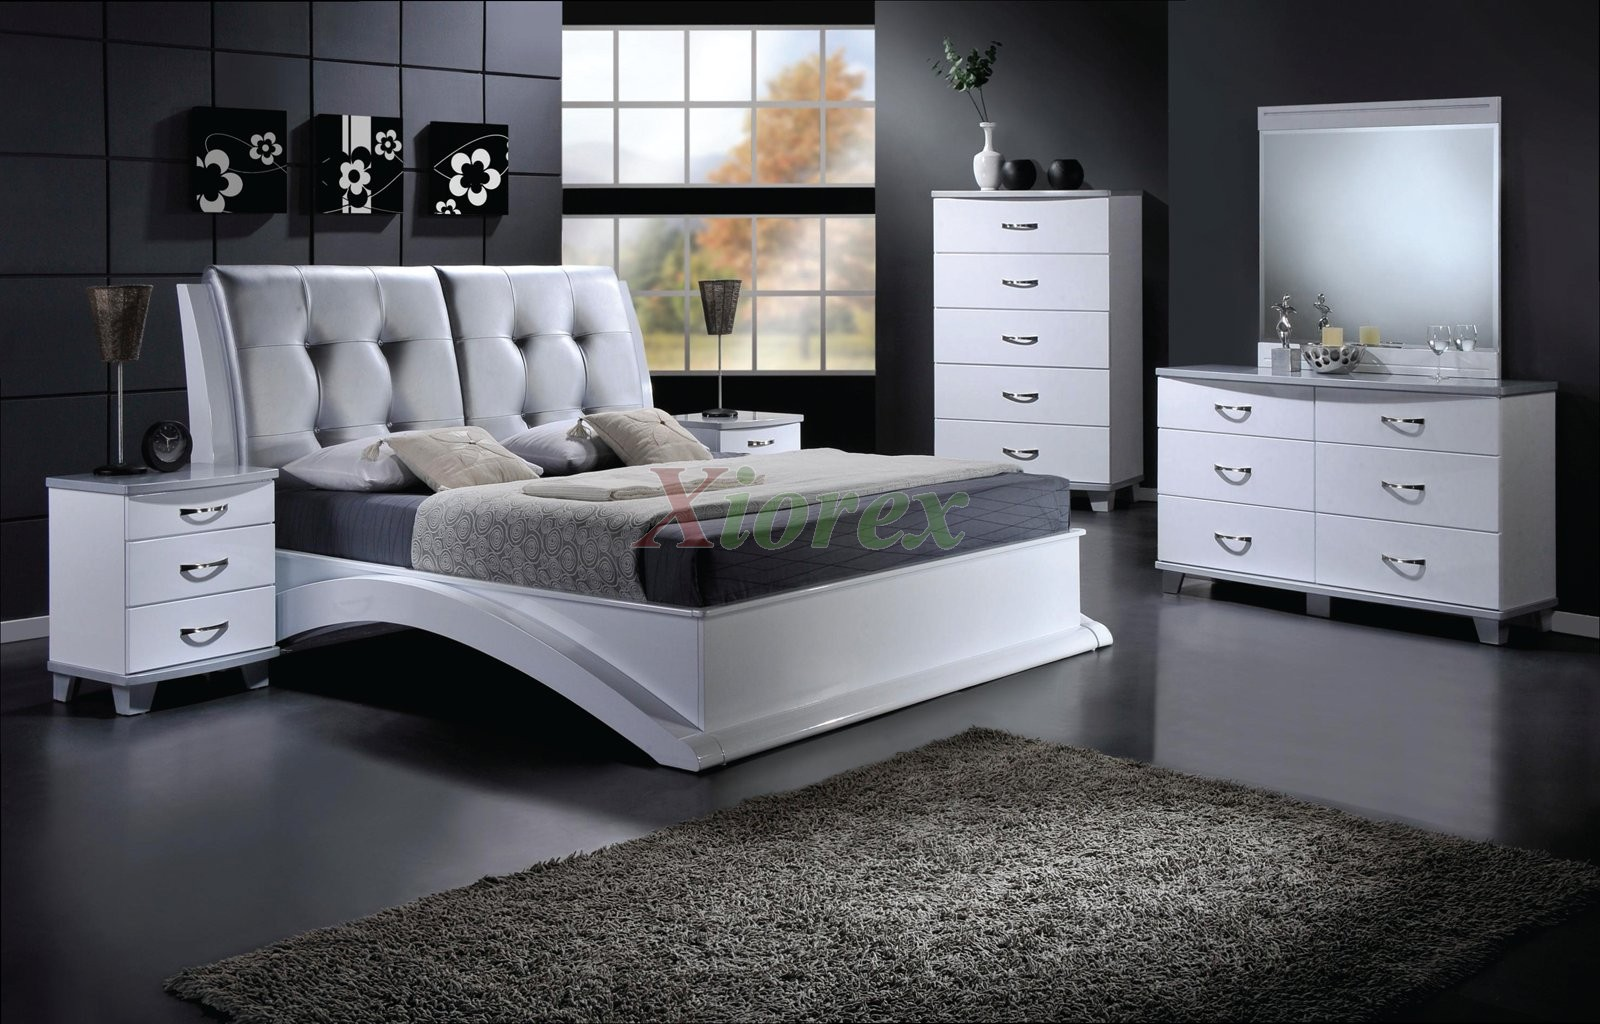 Bed headboard leather - Platform Bedroom Furniture Set With Leather Headboard 145 Xiorex Not Available In The Us